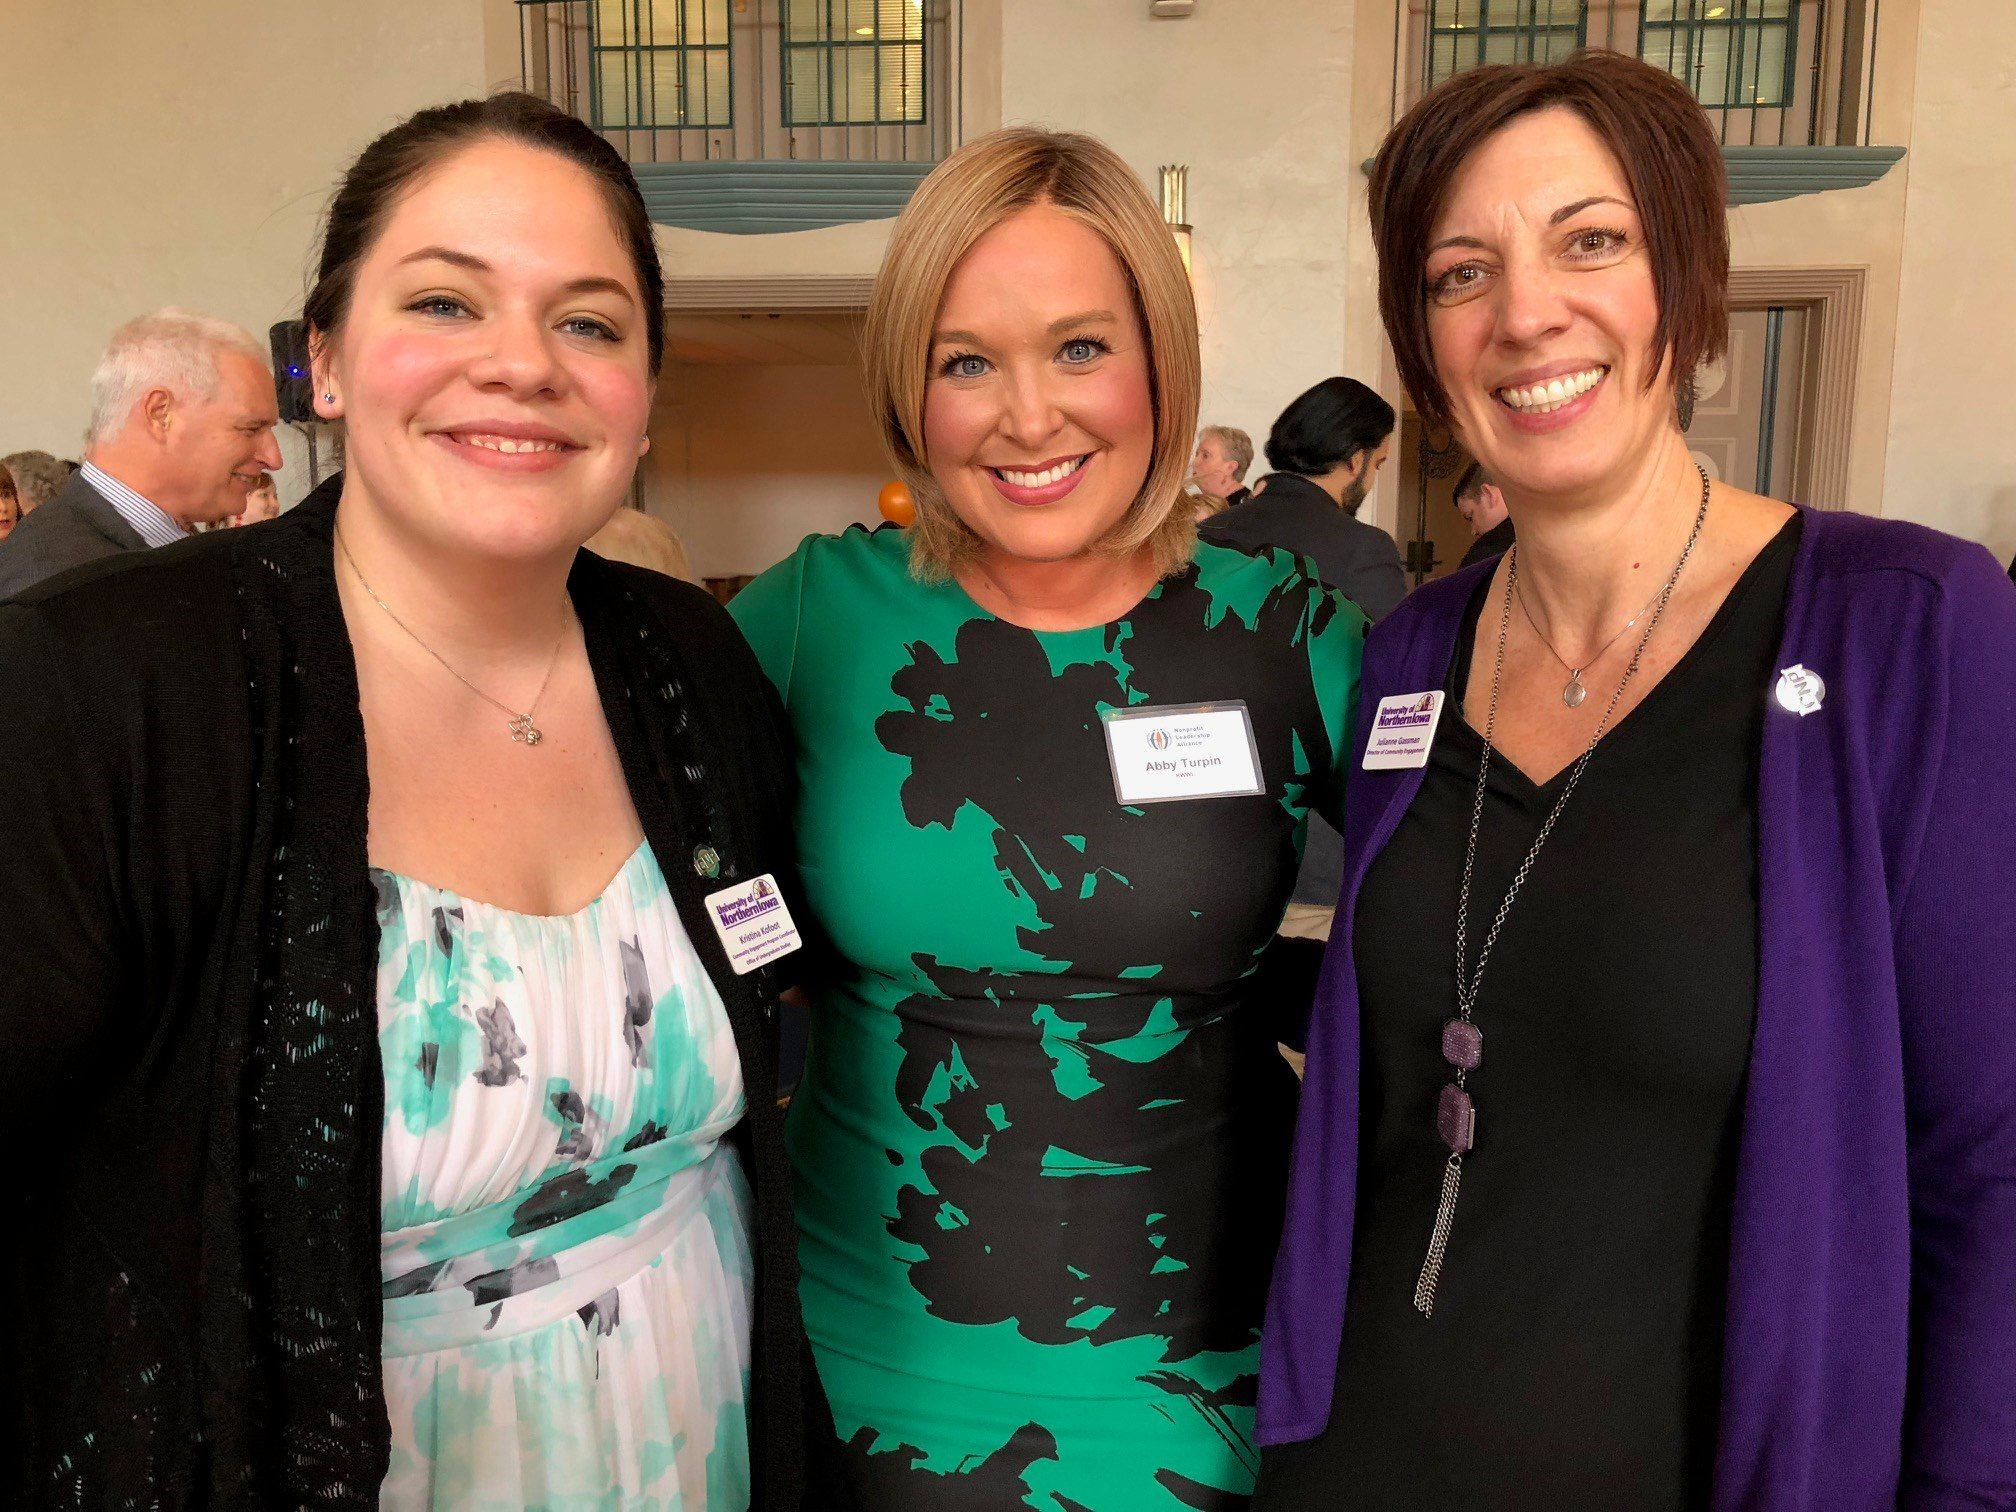 UNI's Comm. Engagement Coordinator Kristina Kofoot, KWWL's Abby Turpin and Julianne Gassman, Campus Executive Director of the Nonprofit Leadership Alliance